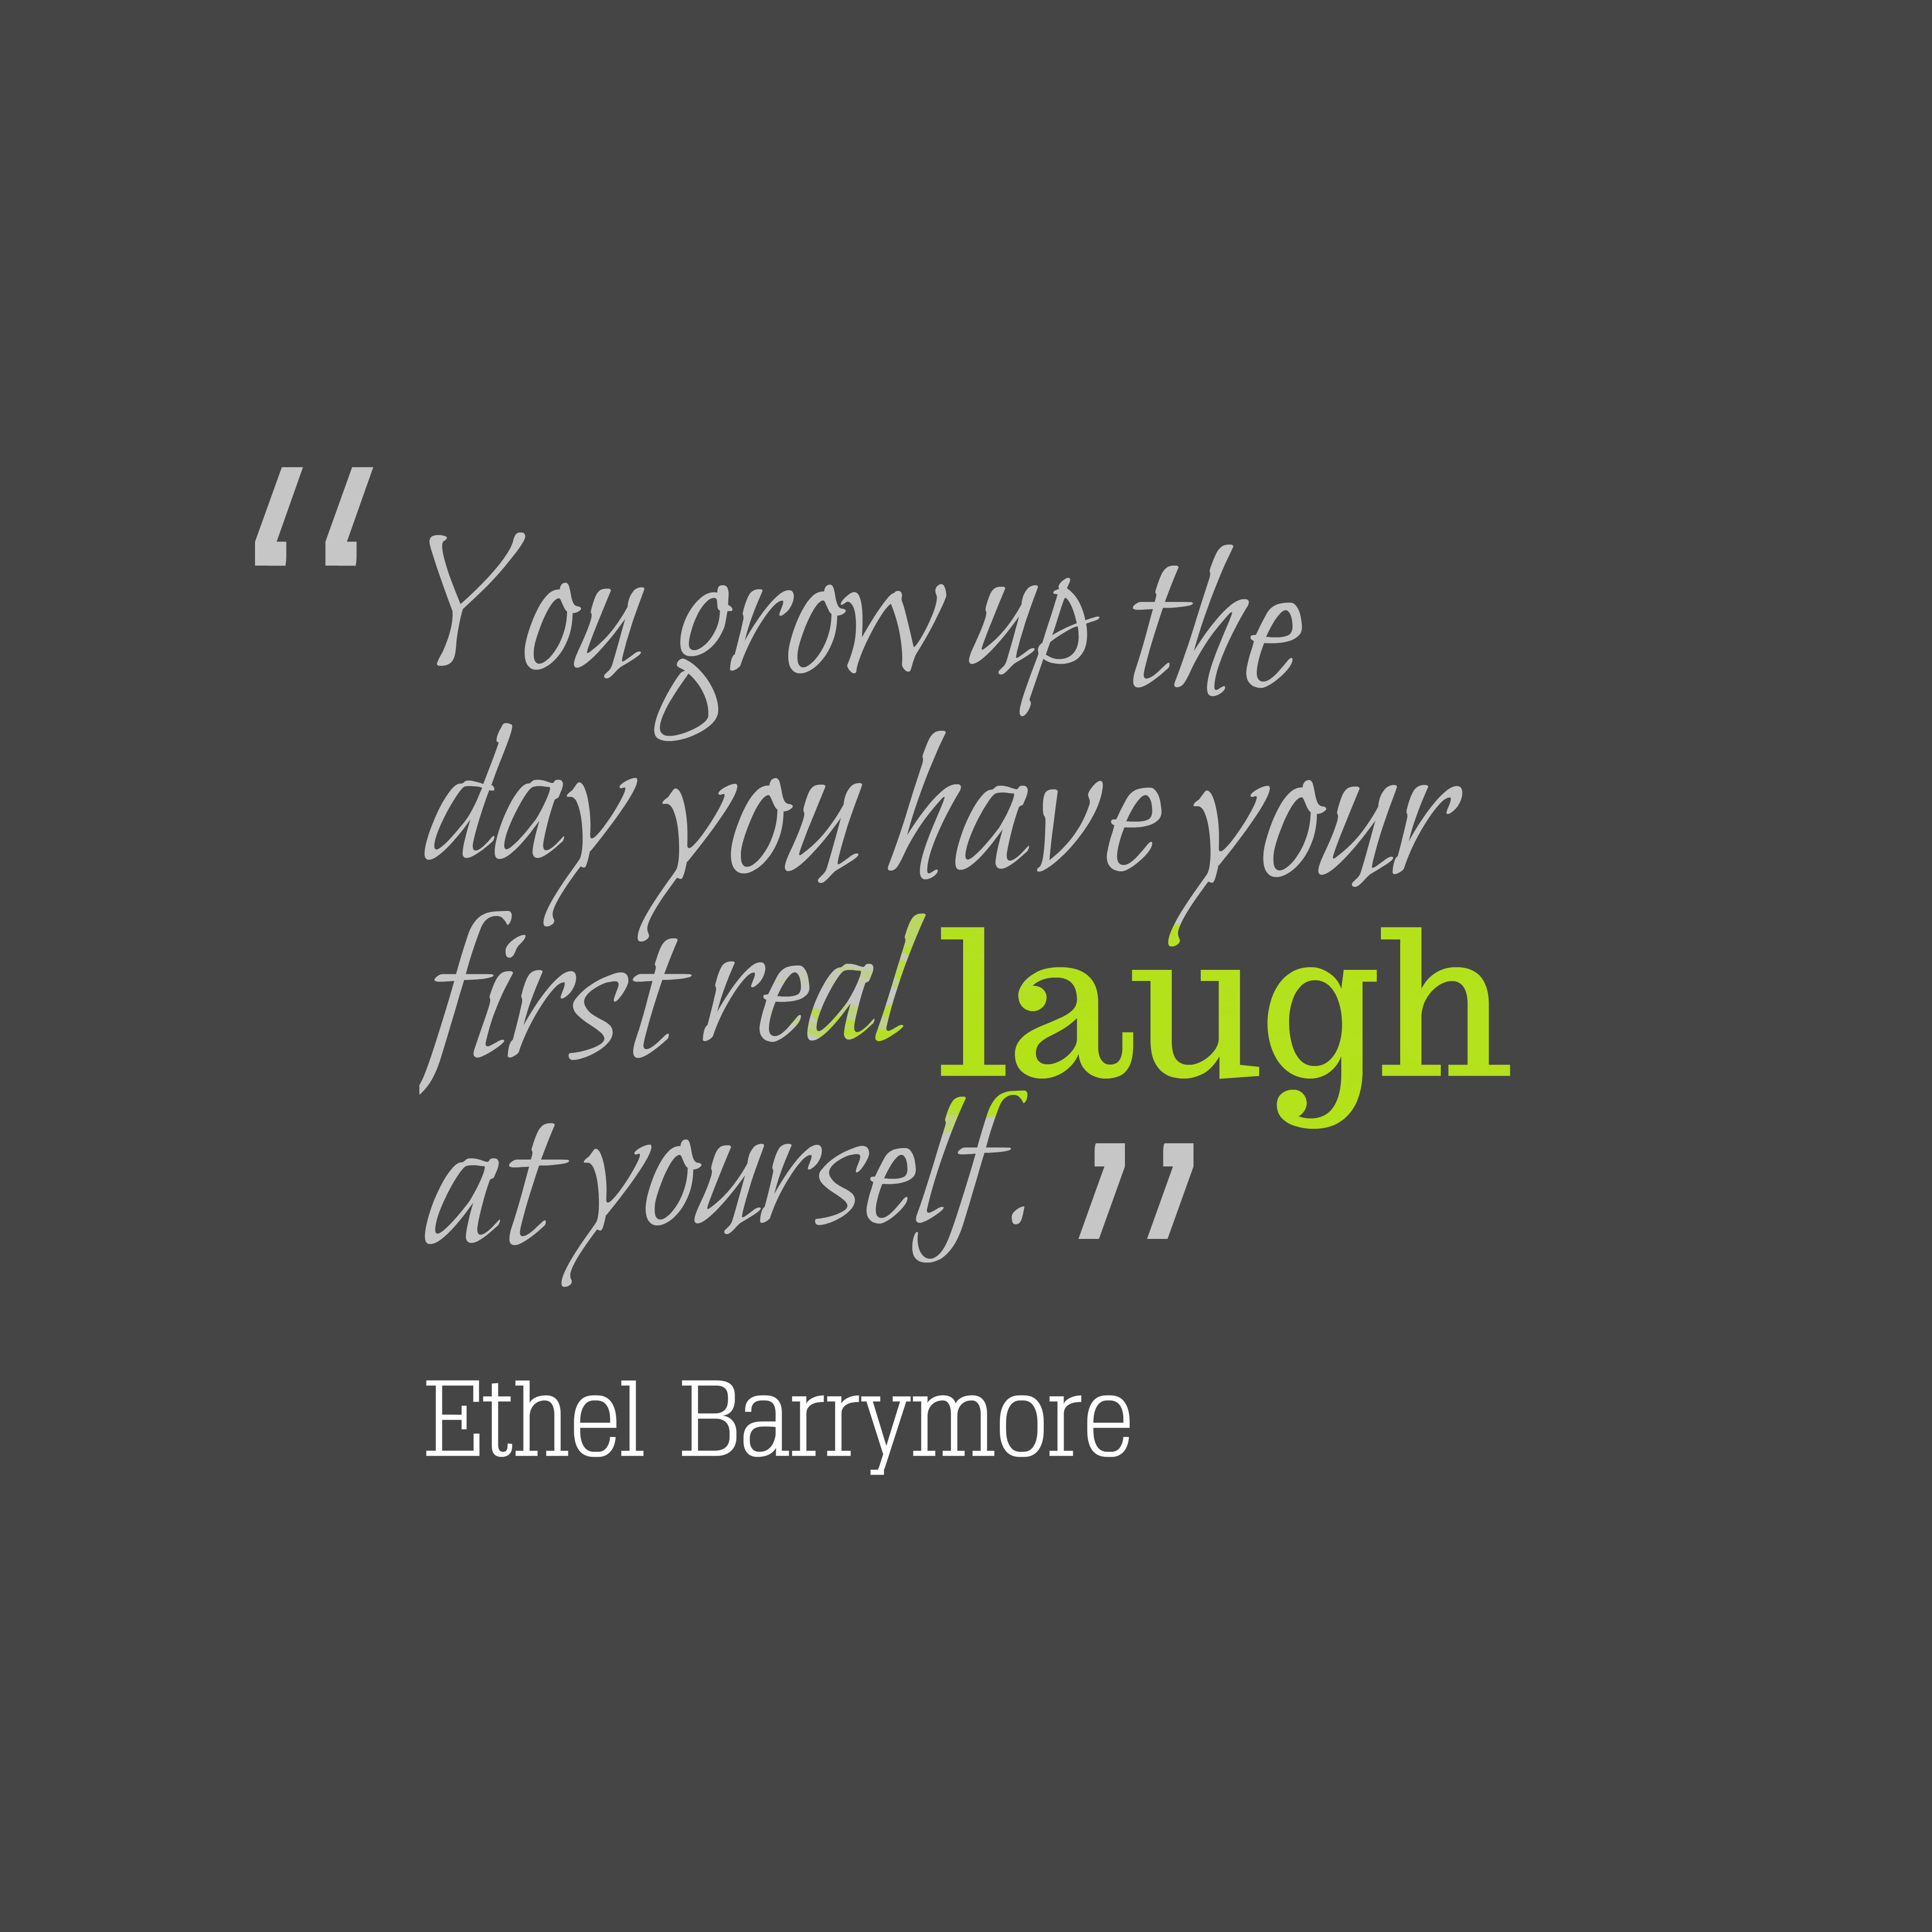 Quotes image of You grow up the day you have your first real laugh at yourself.